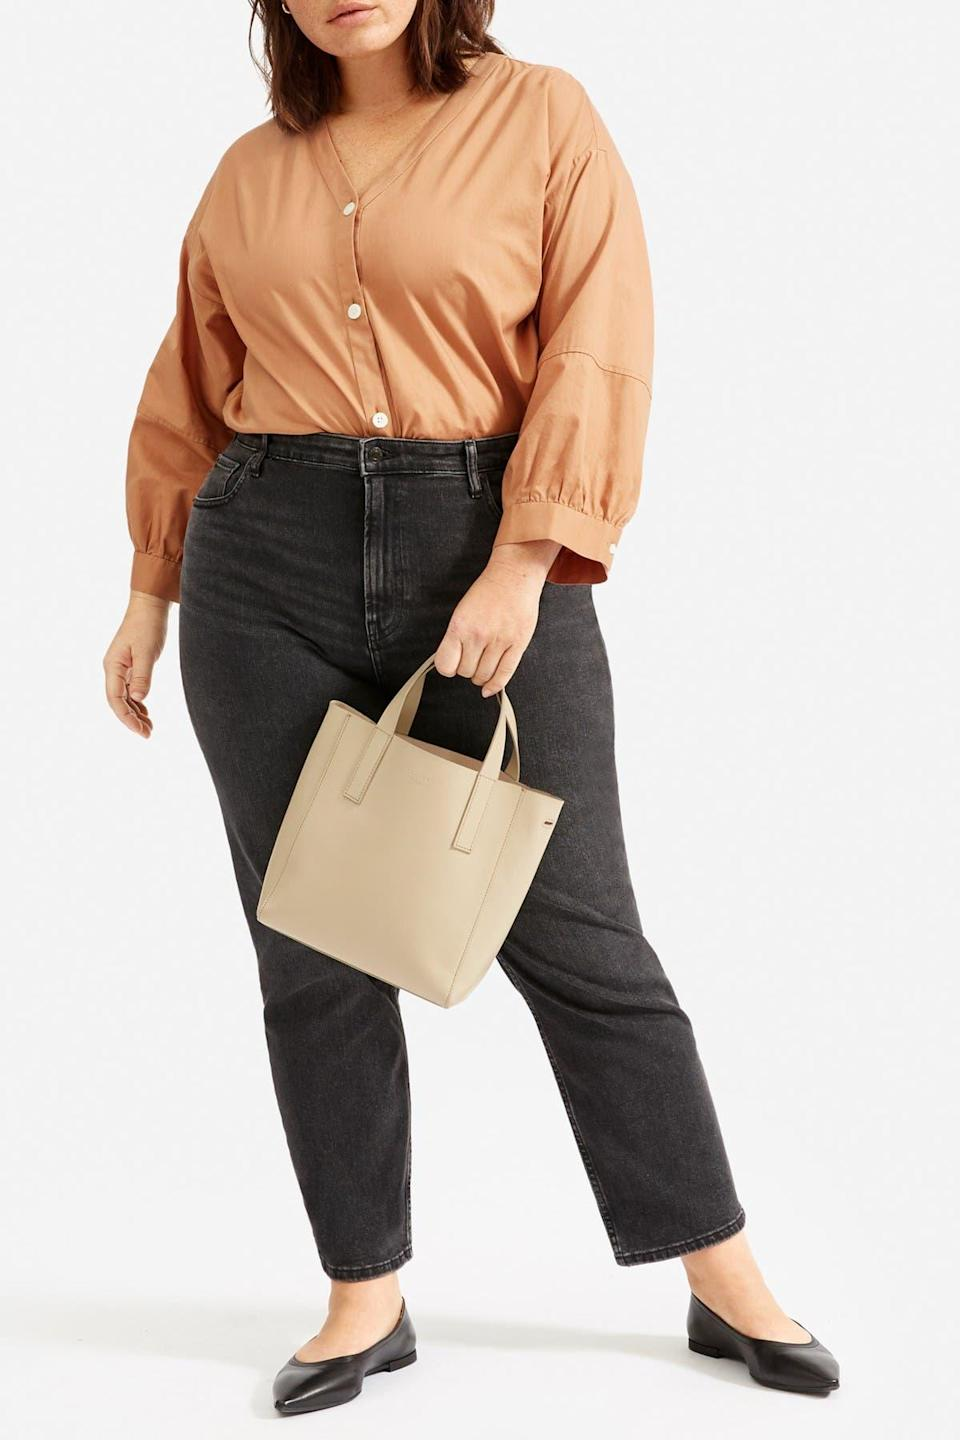 "<br><br><strong>Everlane</strong> The Silky Cotton Silky Lantern Top, $, available at <a href=""https://go.skimresources.com/?id=30283X879131&url=https%3A%2F%2Fwww.nordstromrack.com%2Fs%2Feverlane-the-silky-cotton-silky-lantern-top%2Fn3358072"" rel=""nofollow noopener"" target=""_blank"" data-ylk=""slk:Nordstrom Rack"" class=""link rapid-noclick-resp"">Nordstrom Rack</a>"